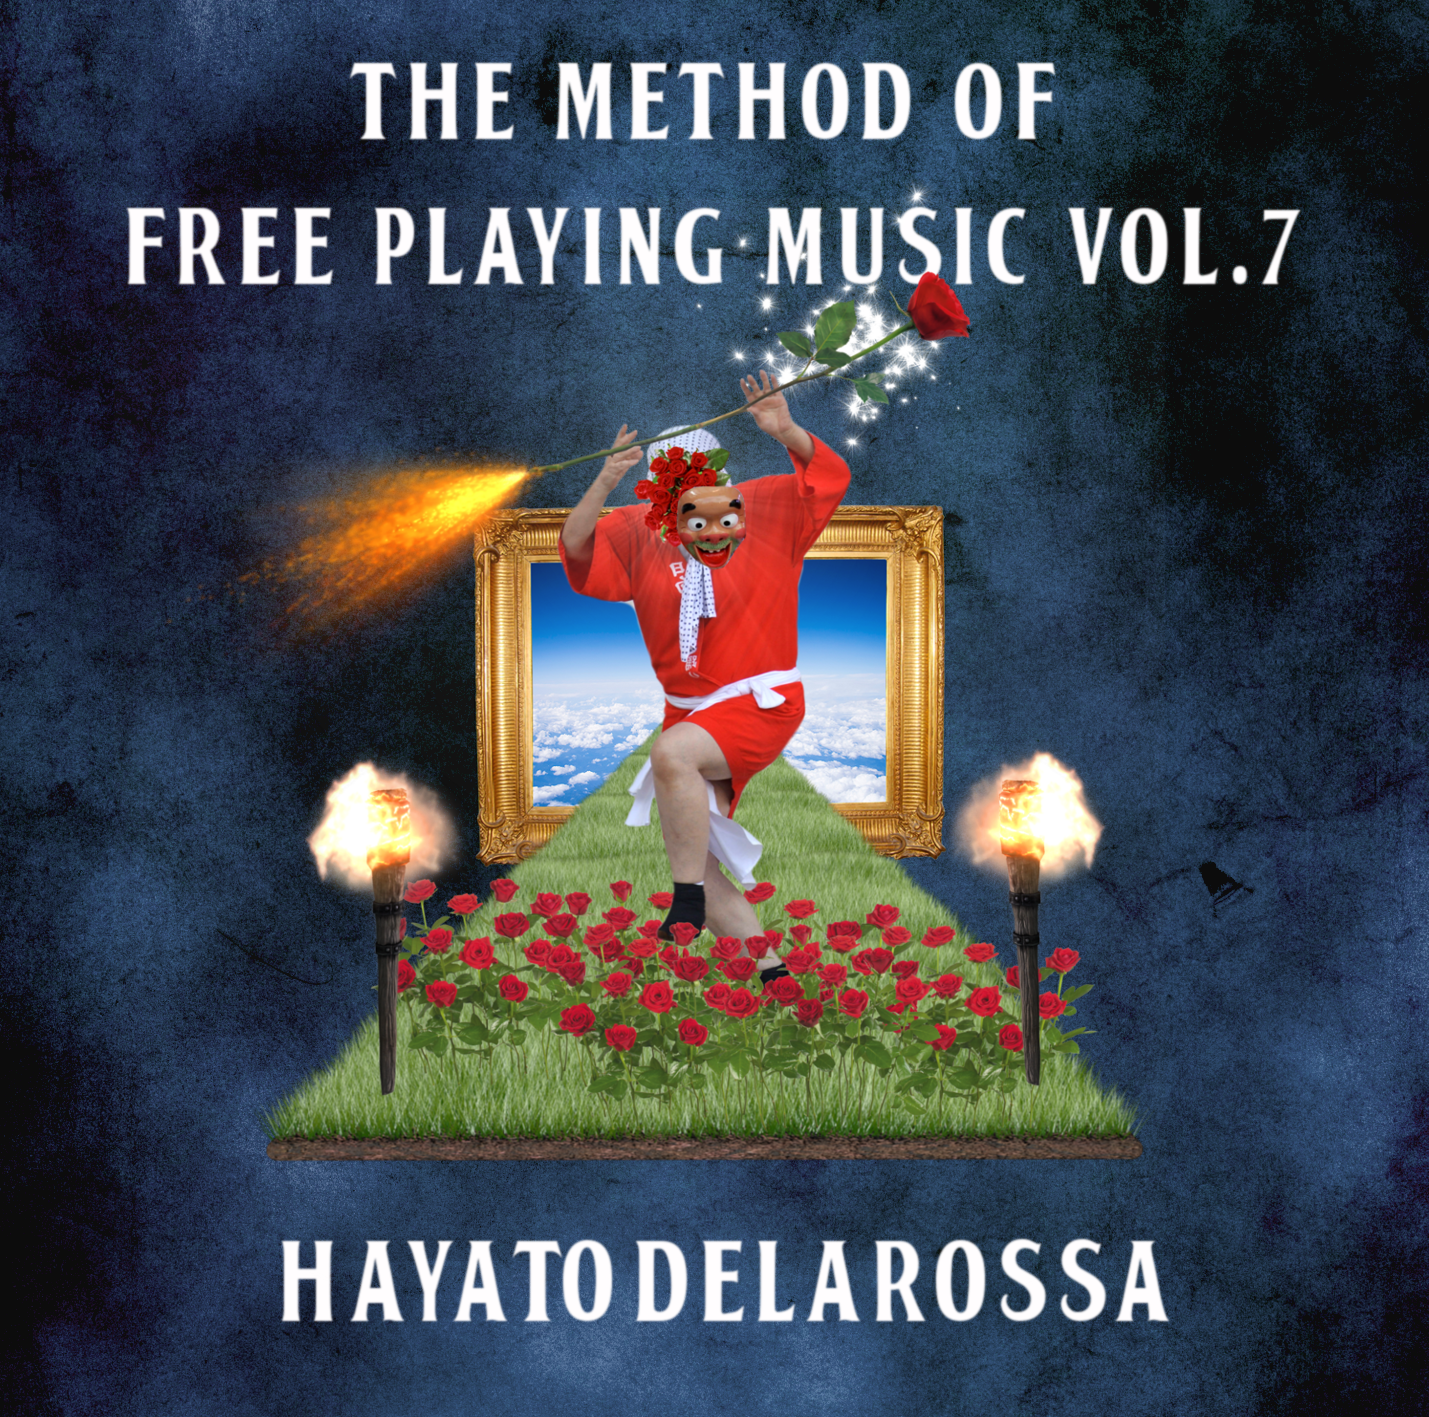 NEW MIX UPLOAD「the method of free playing music vol.7」